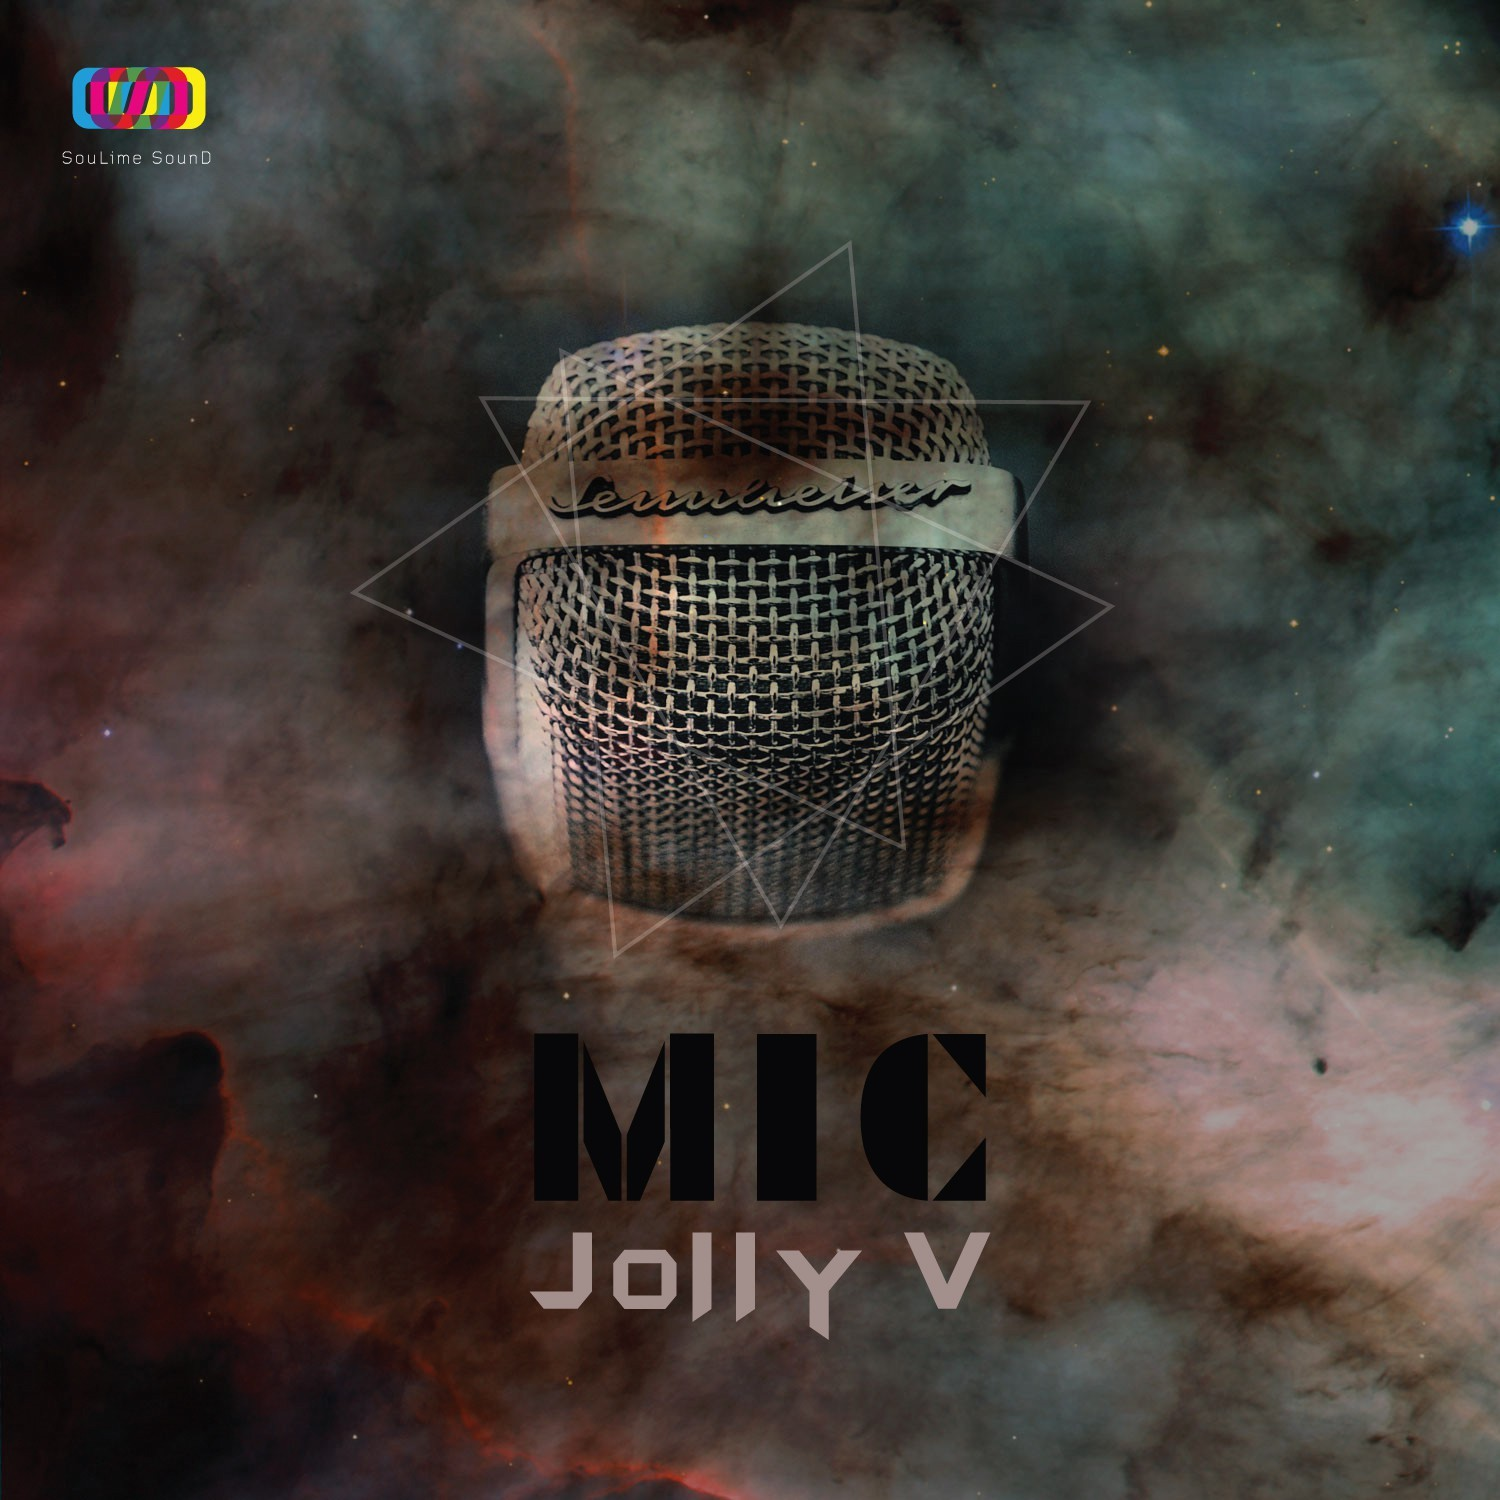 [Single] Jolly V   MIC (MP3)